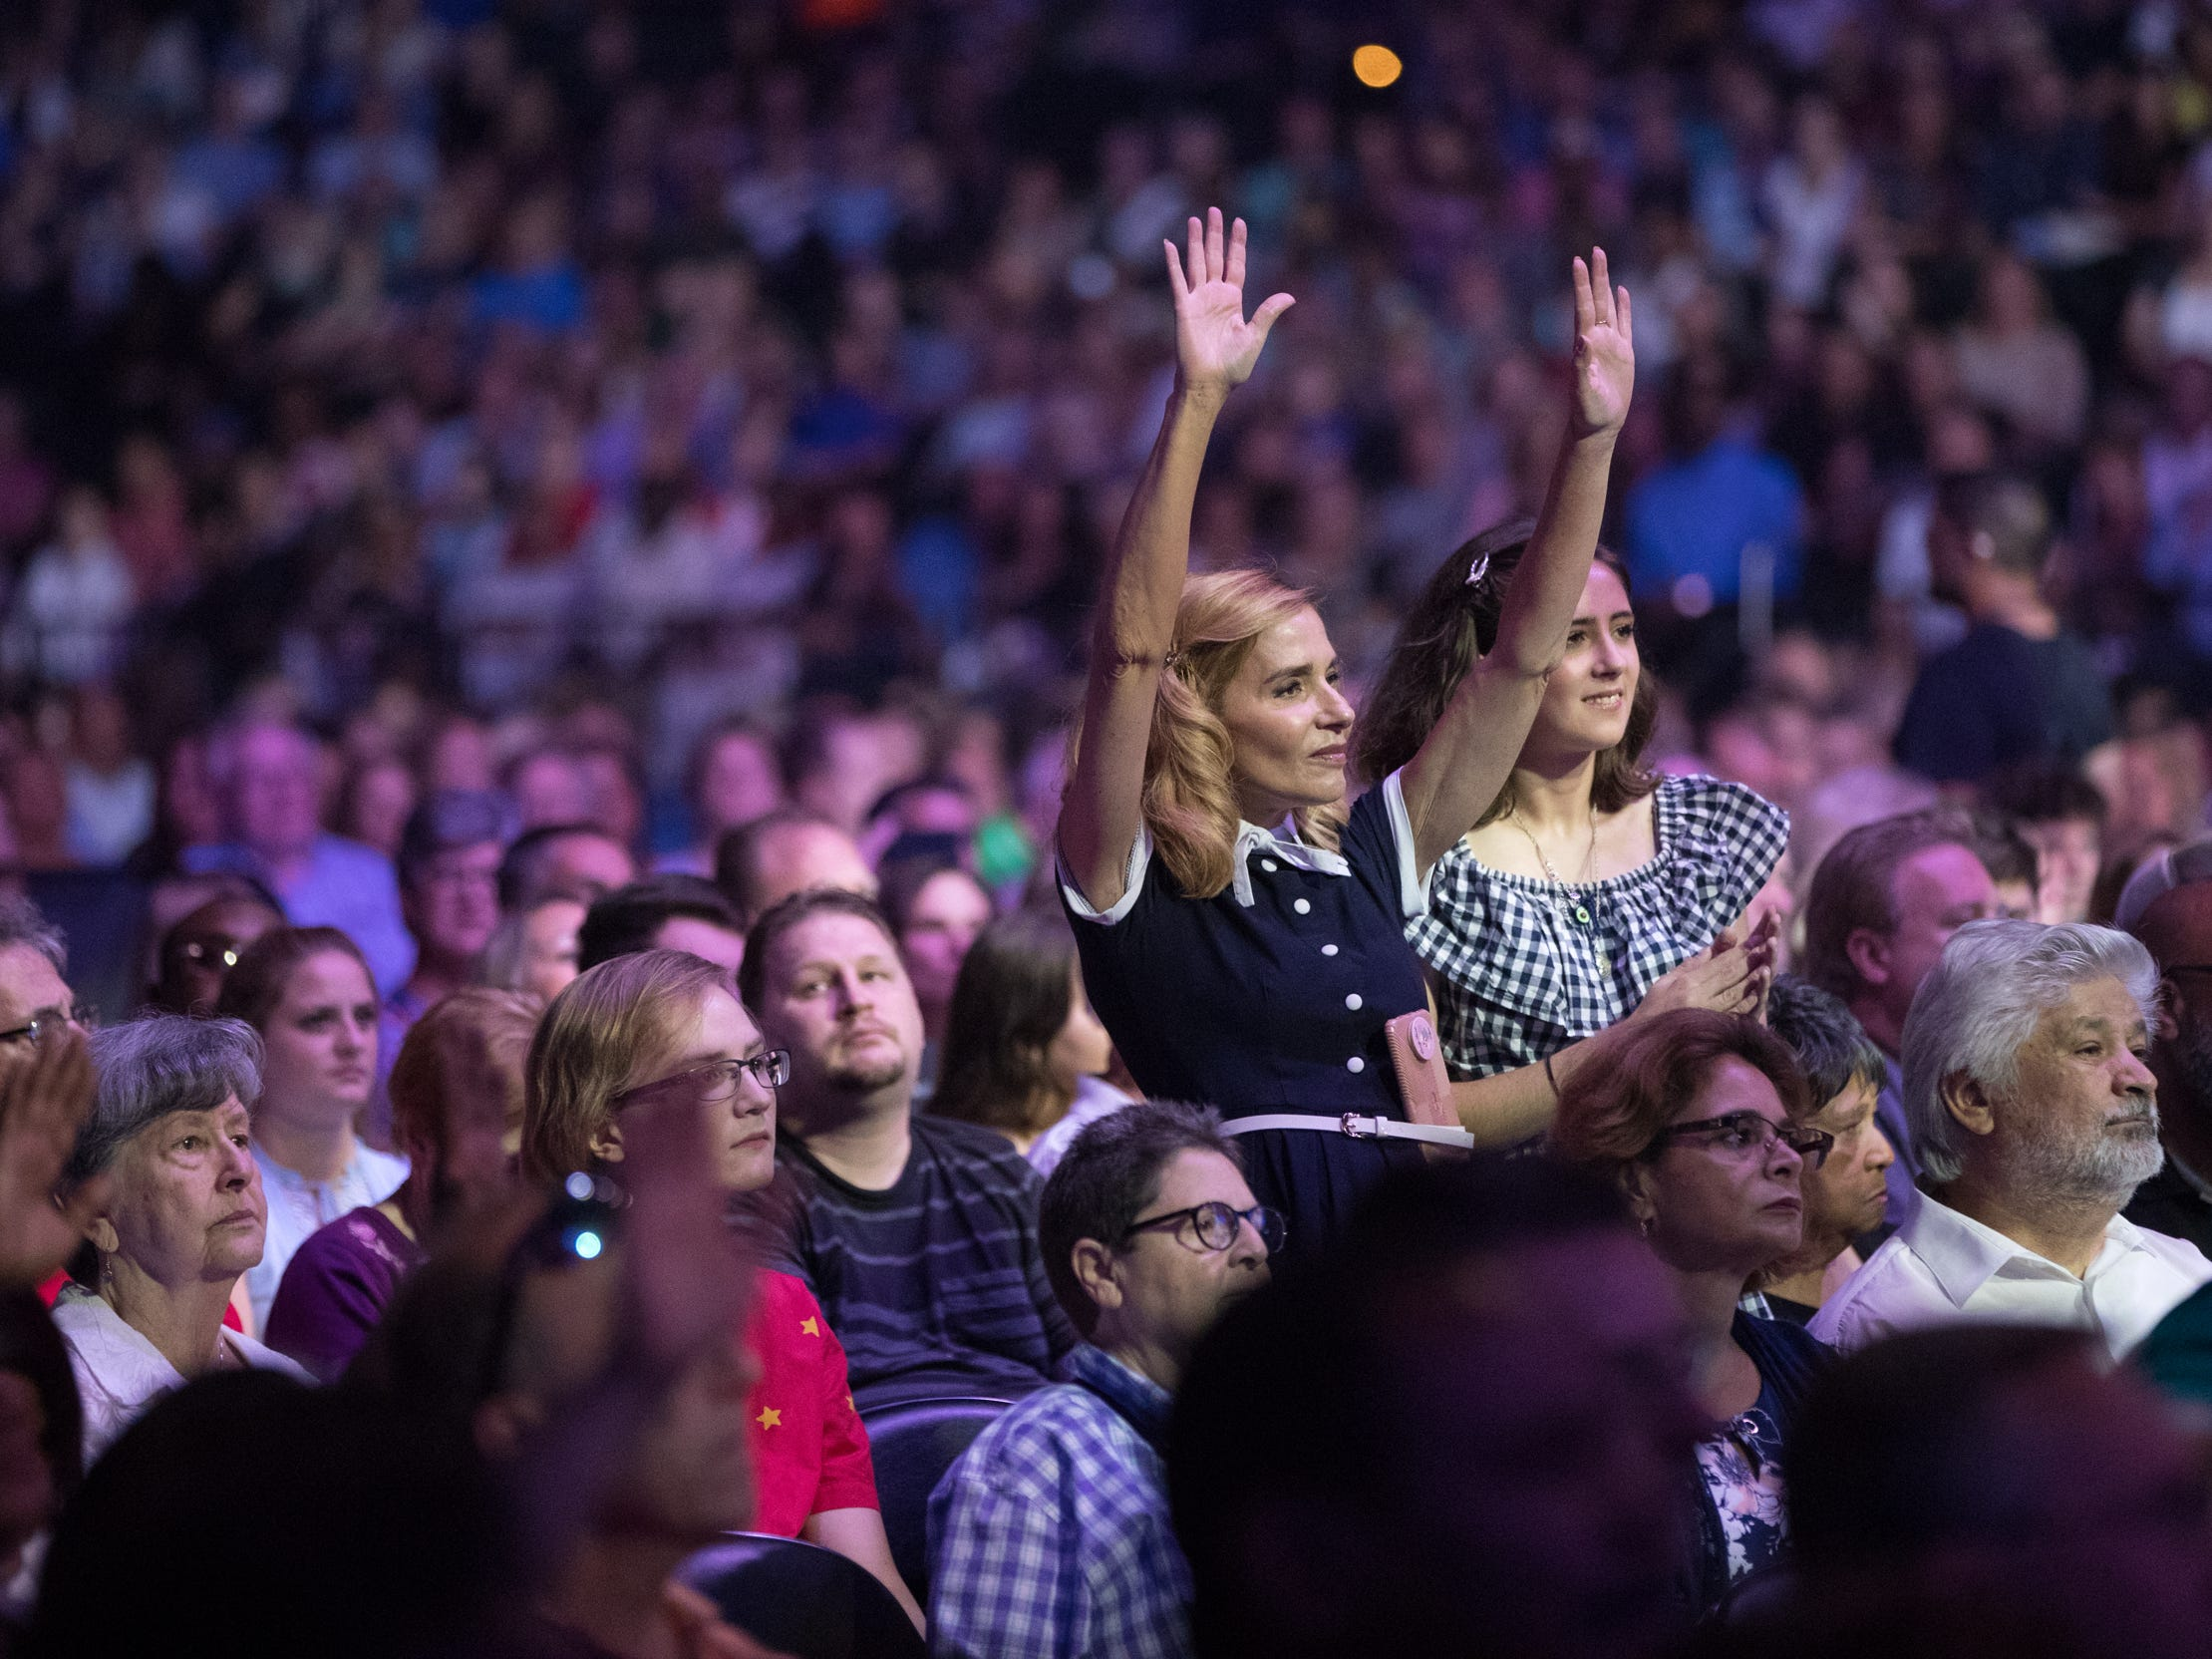 The audience watches a praise band performance at Bankers Life Fieldhouse, Indianapolis, Friday, Aug. 10, 2018. The event, dubbed Night of Hope with Joel and Victoria, drew about 8,000 people to the arena for the event with the Houston-based televangelist.